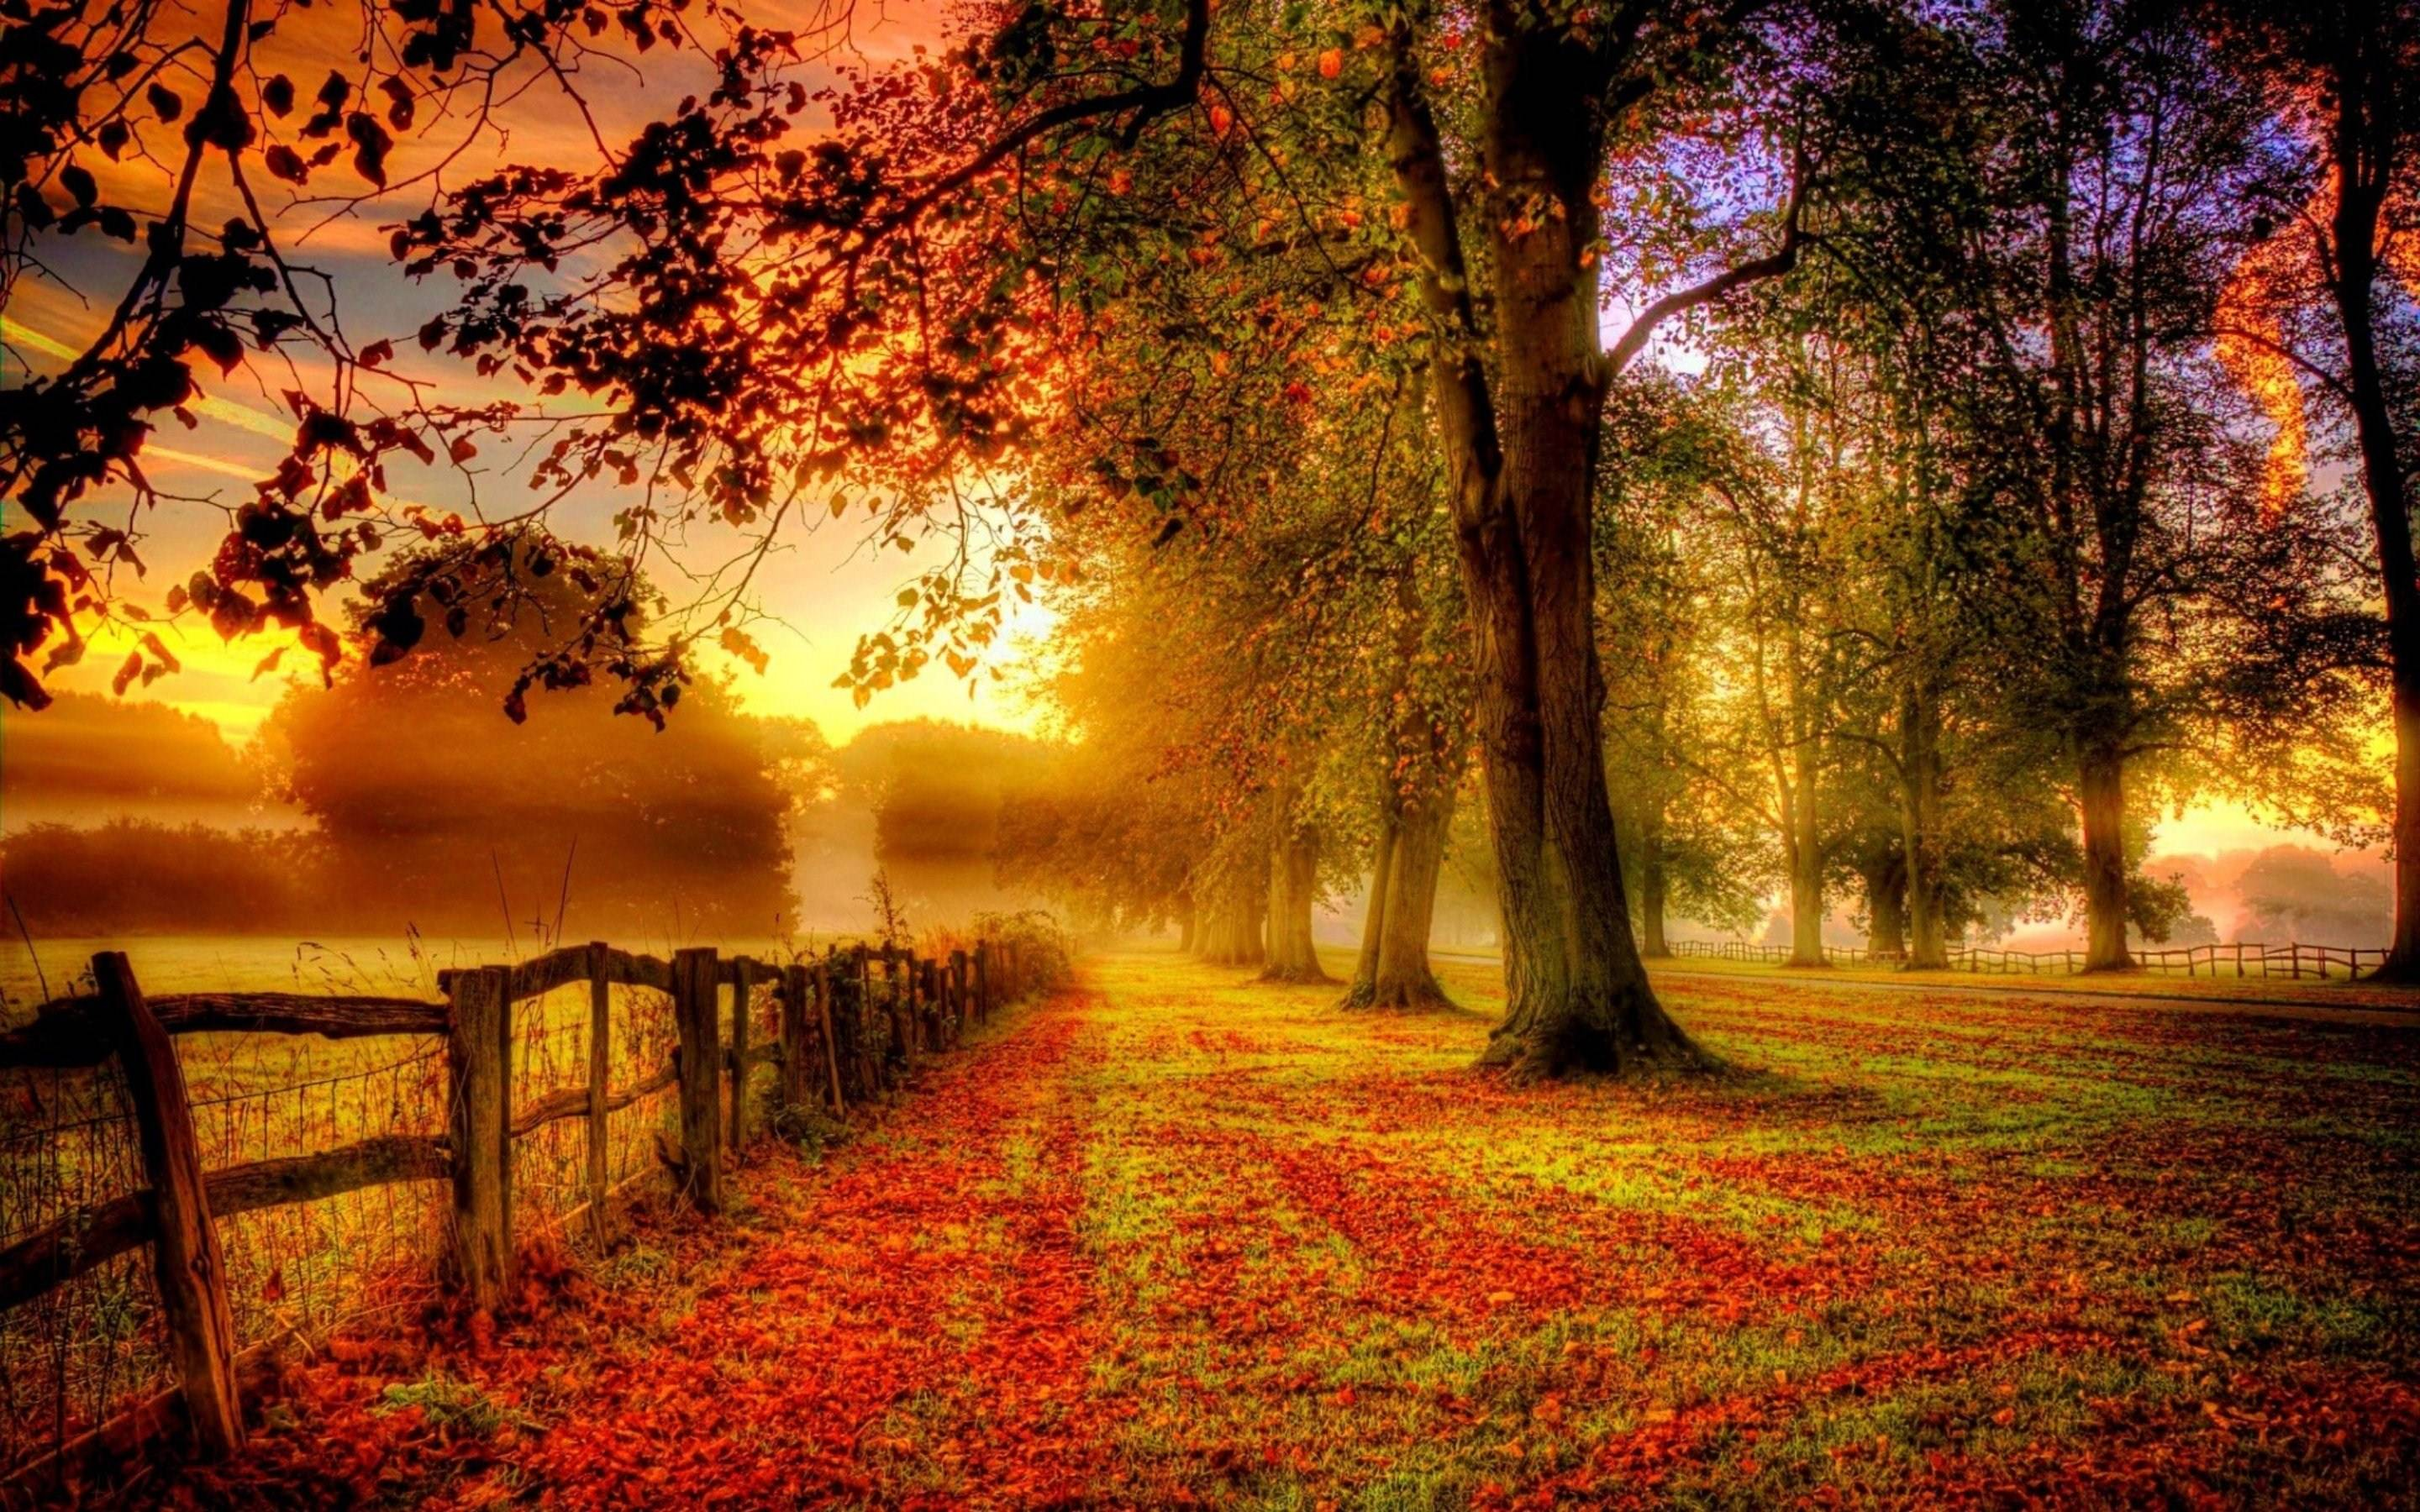 Delightful Fall Landscape Wallpapers   Wallpaper Cave